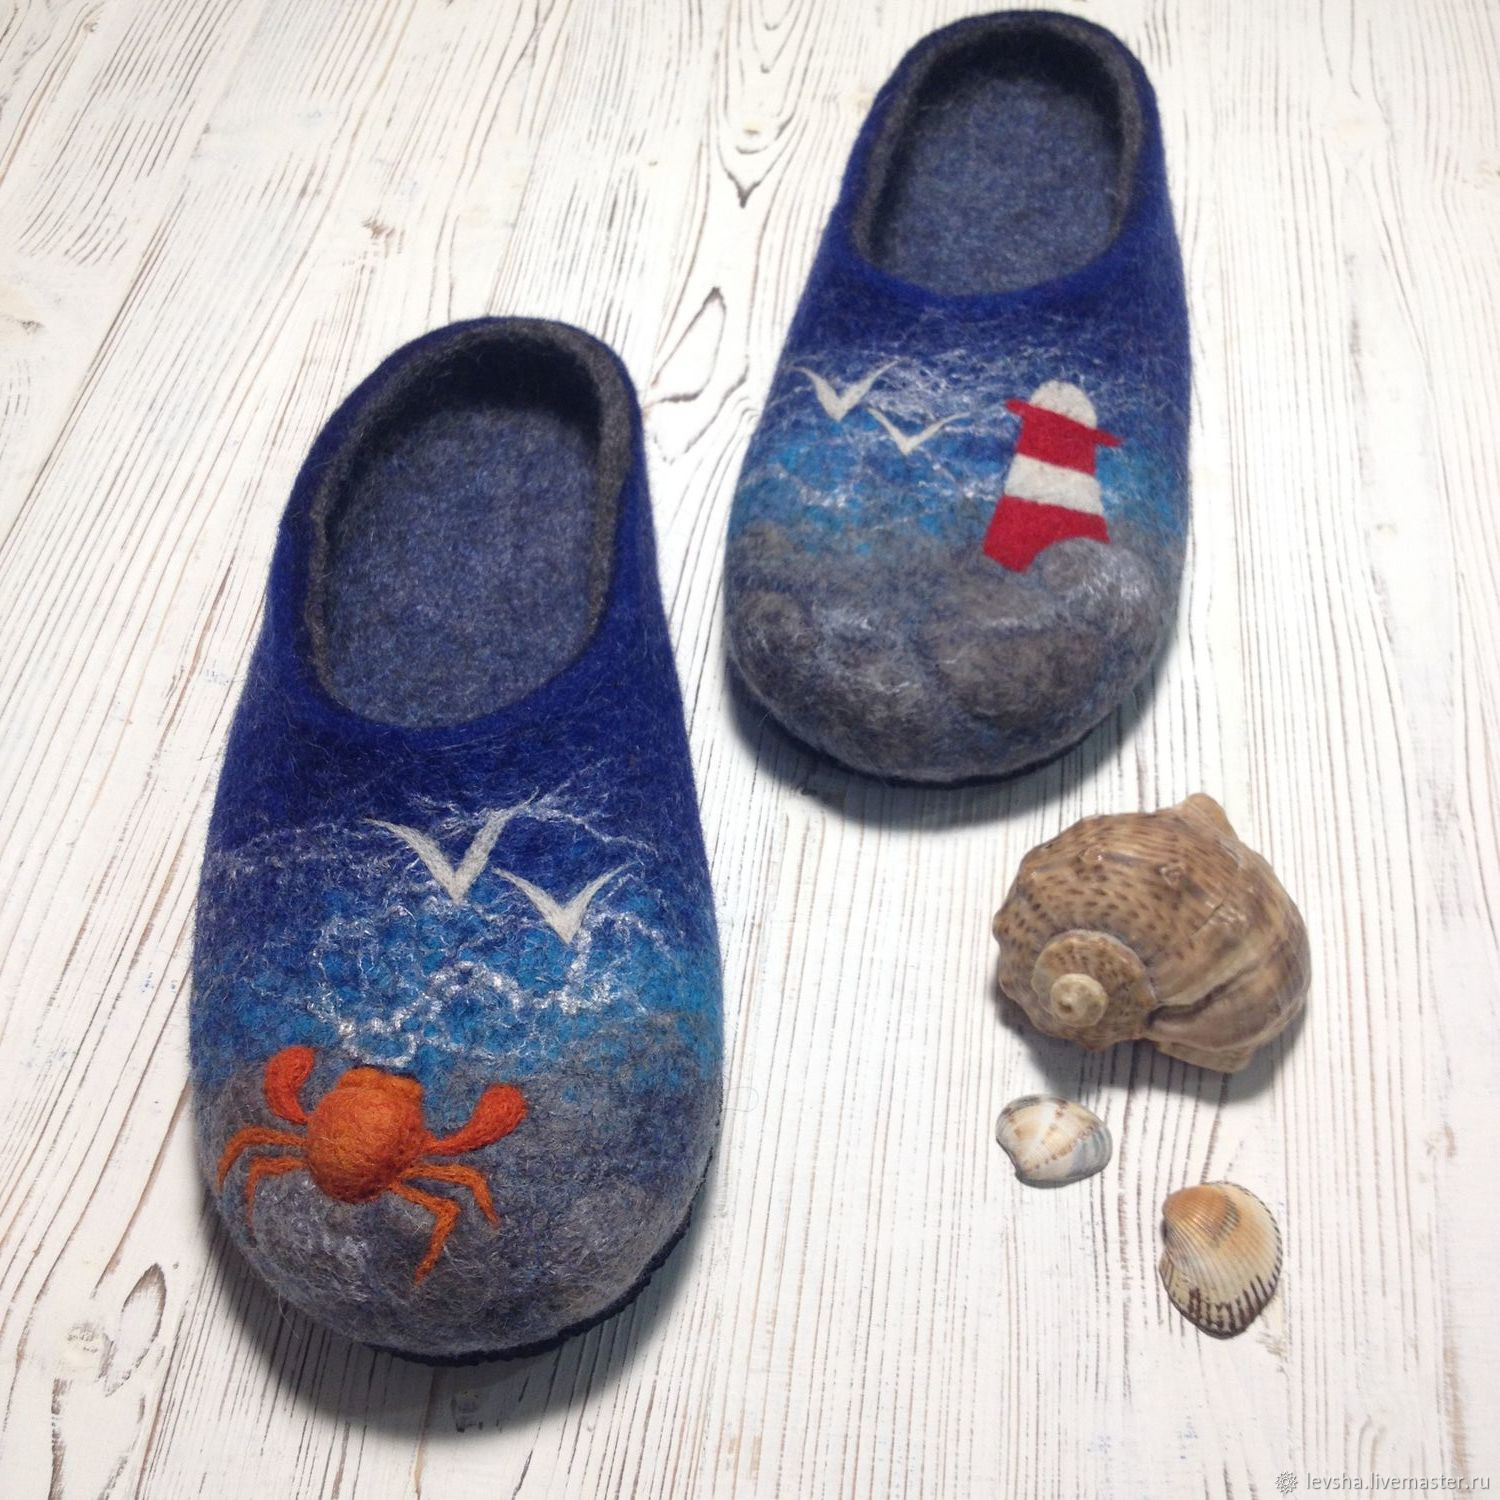 Felted women's Slippers. Homemade felted Slippers. Flip flops. Felted Slippers handmade. Slippers hemmed. Fair Masters. Felted Slippers to buy. Felted Slippers are custom made any size 4-5 days